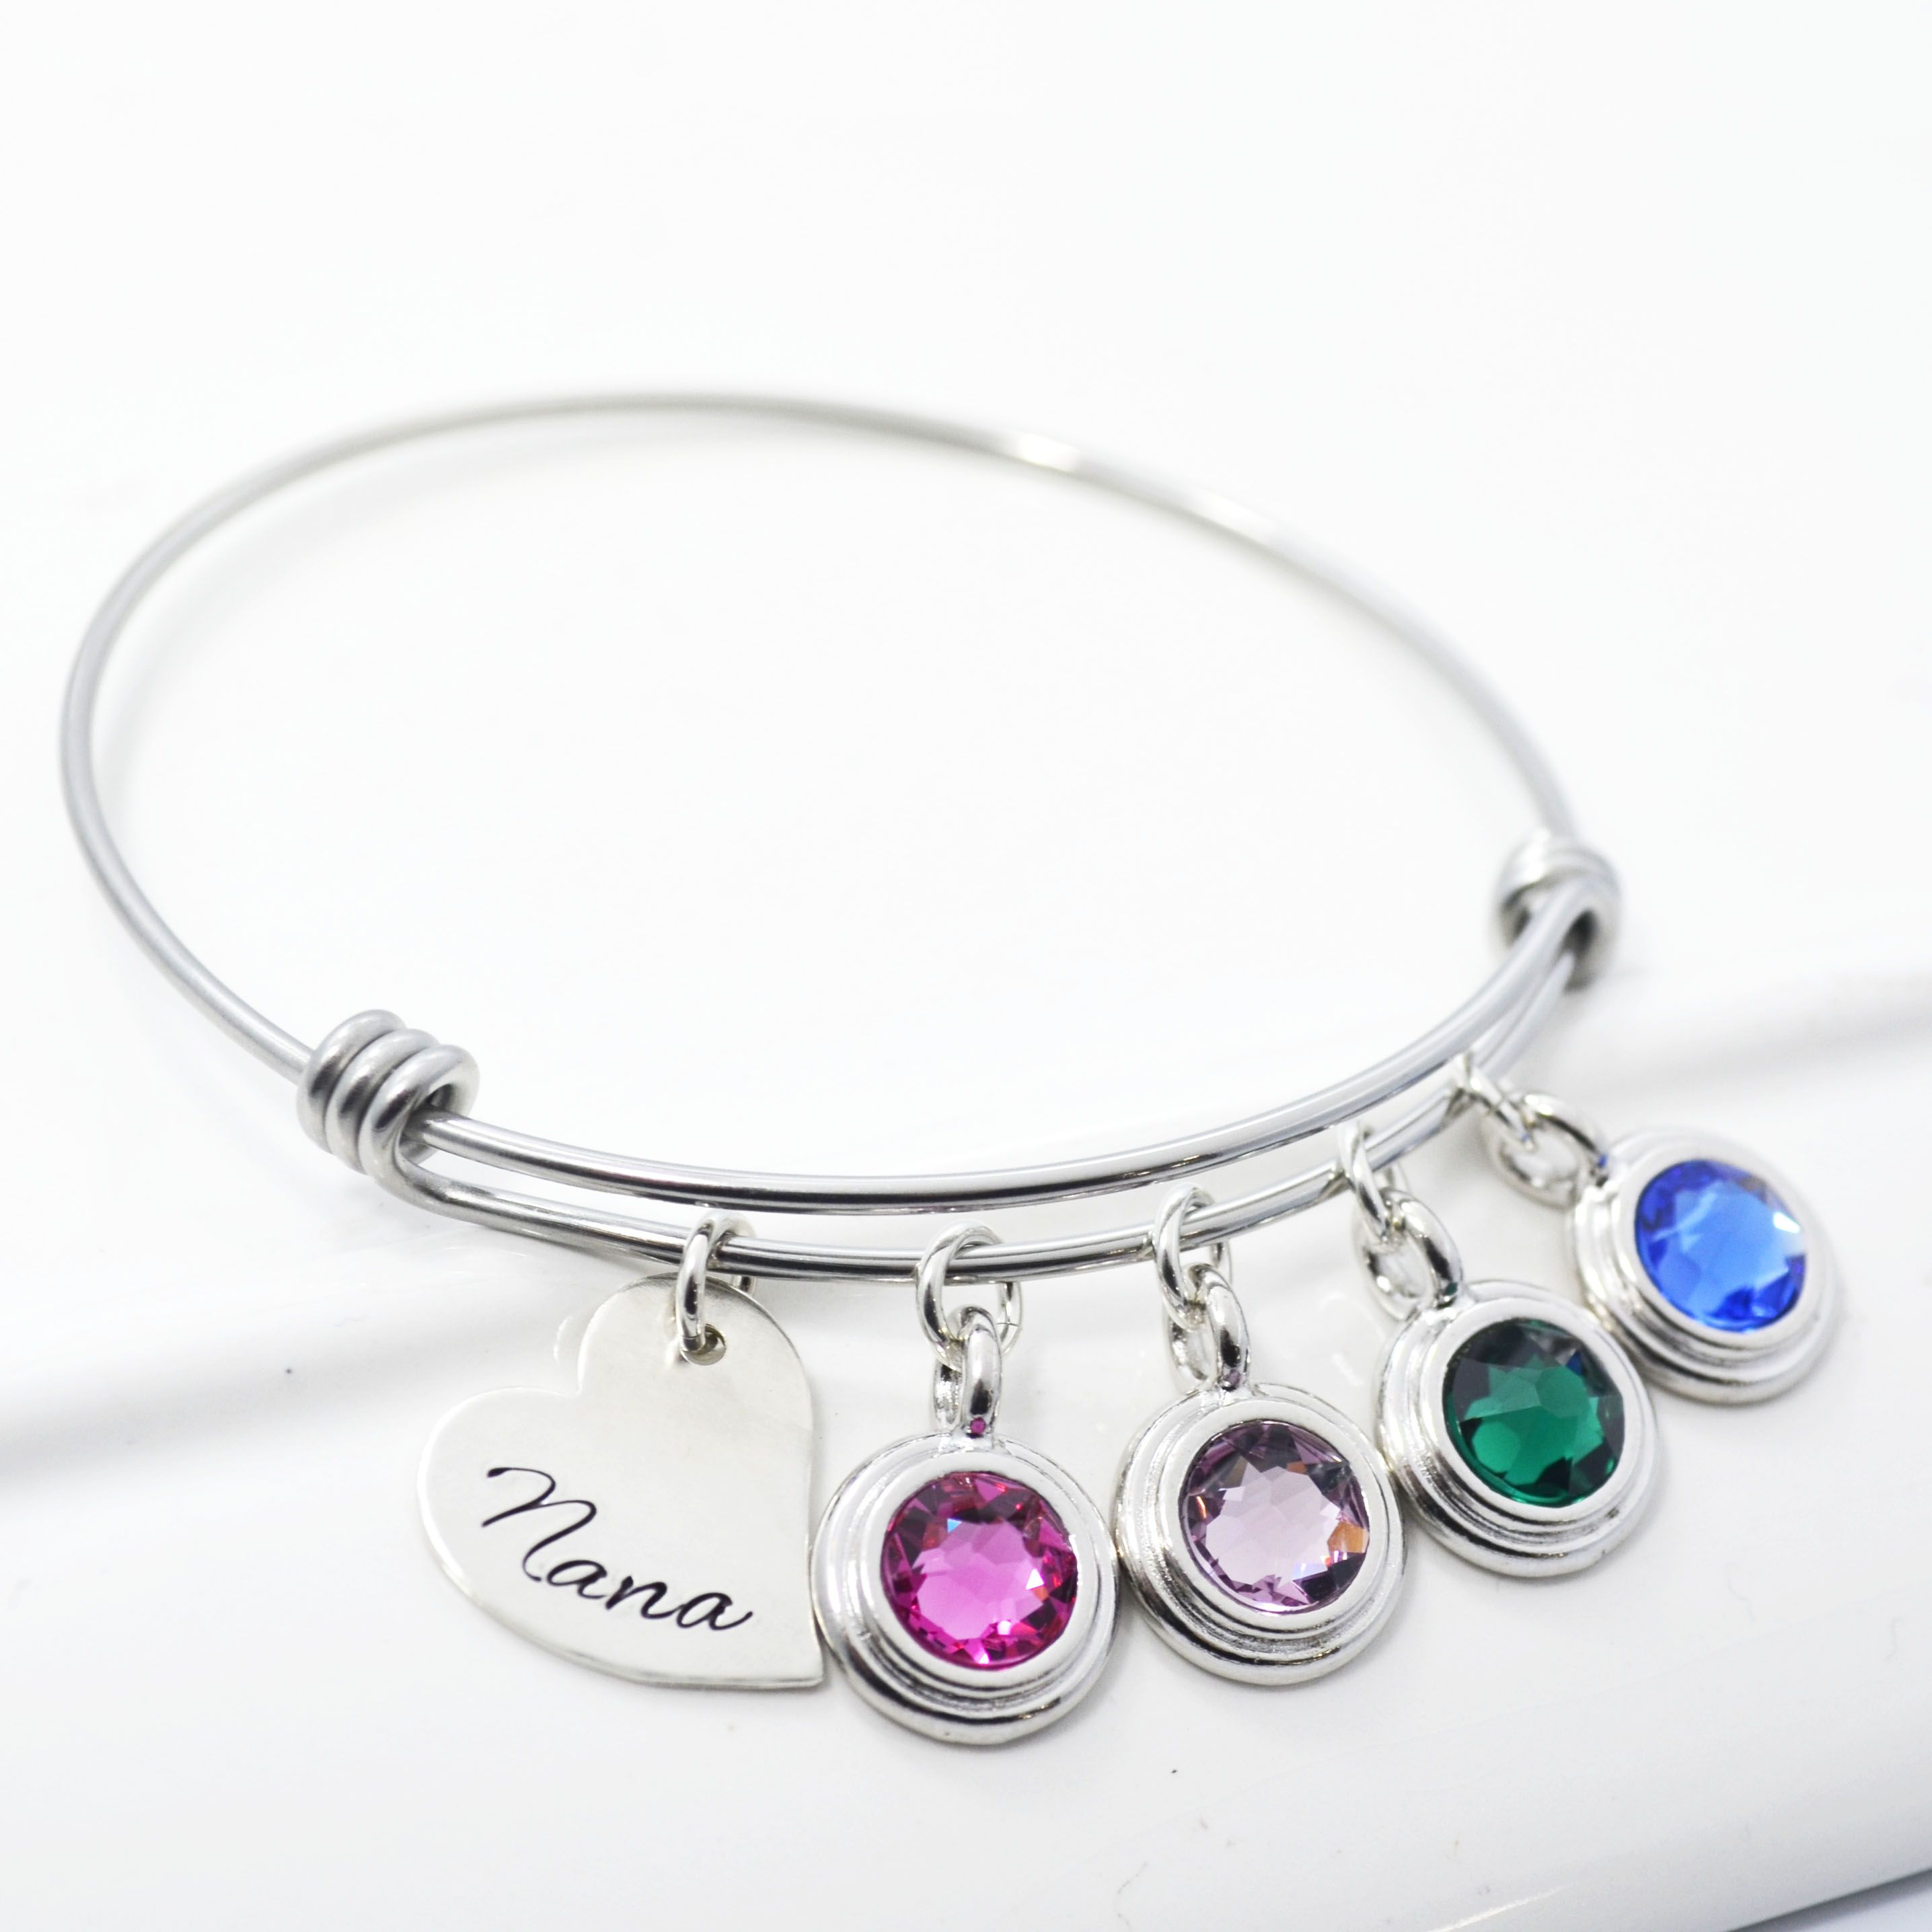 wire shop birthstone bracelet january ani product nordstrom and alex bangle of image expandable